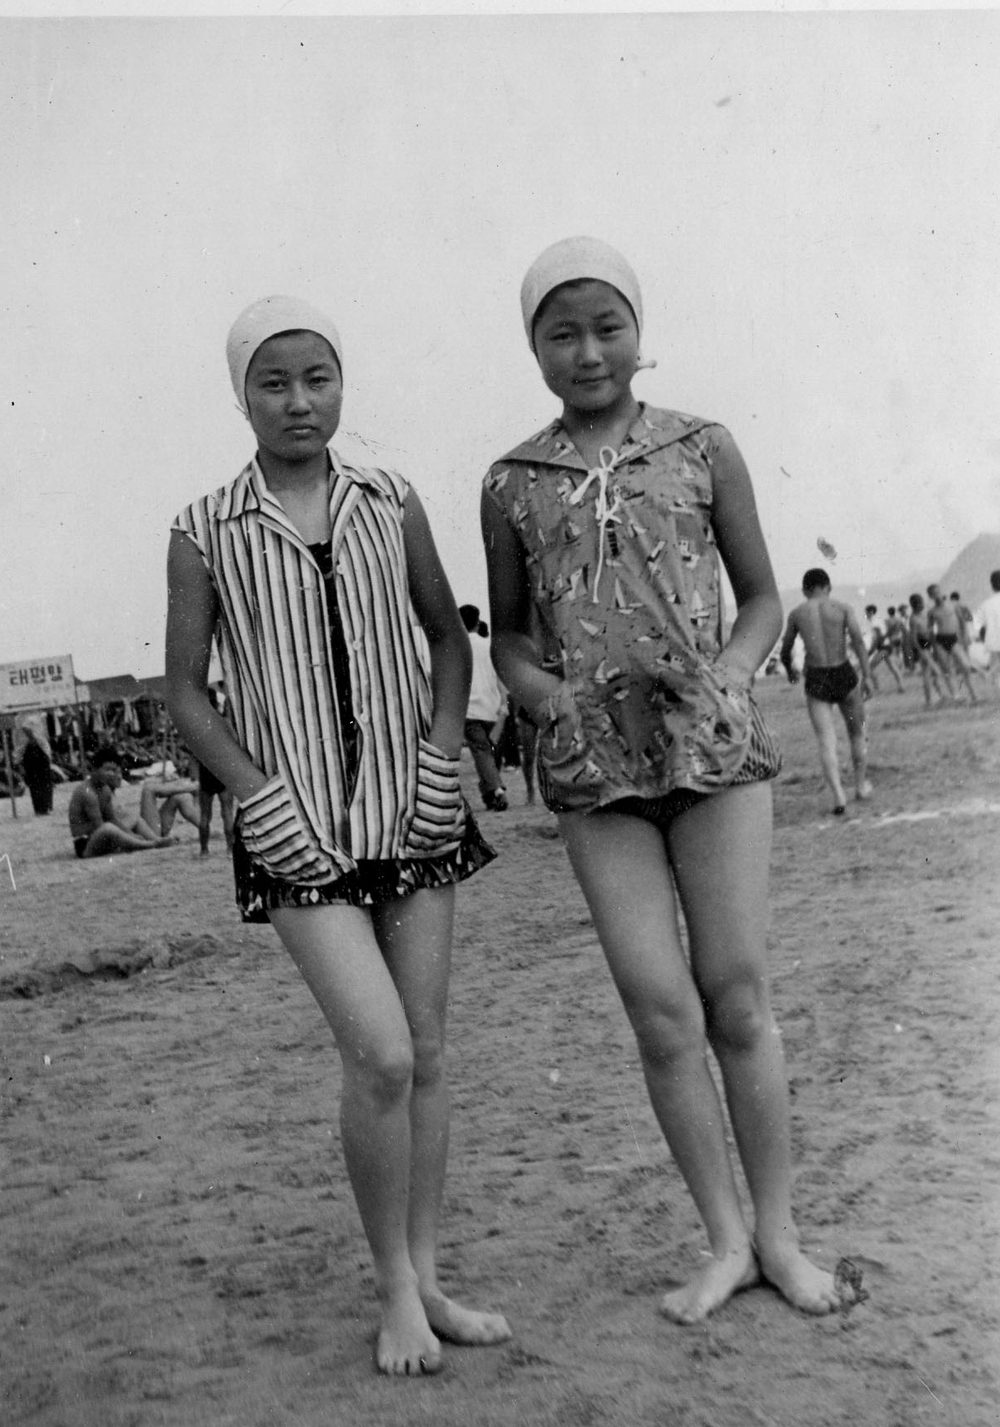 With her sister on the beach, late 1950s